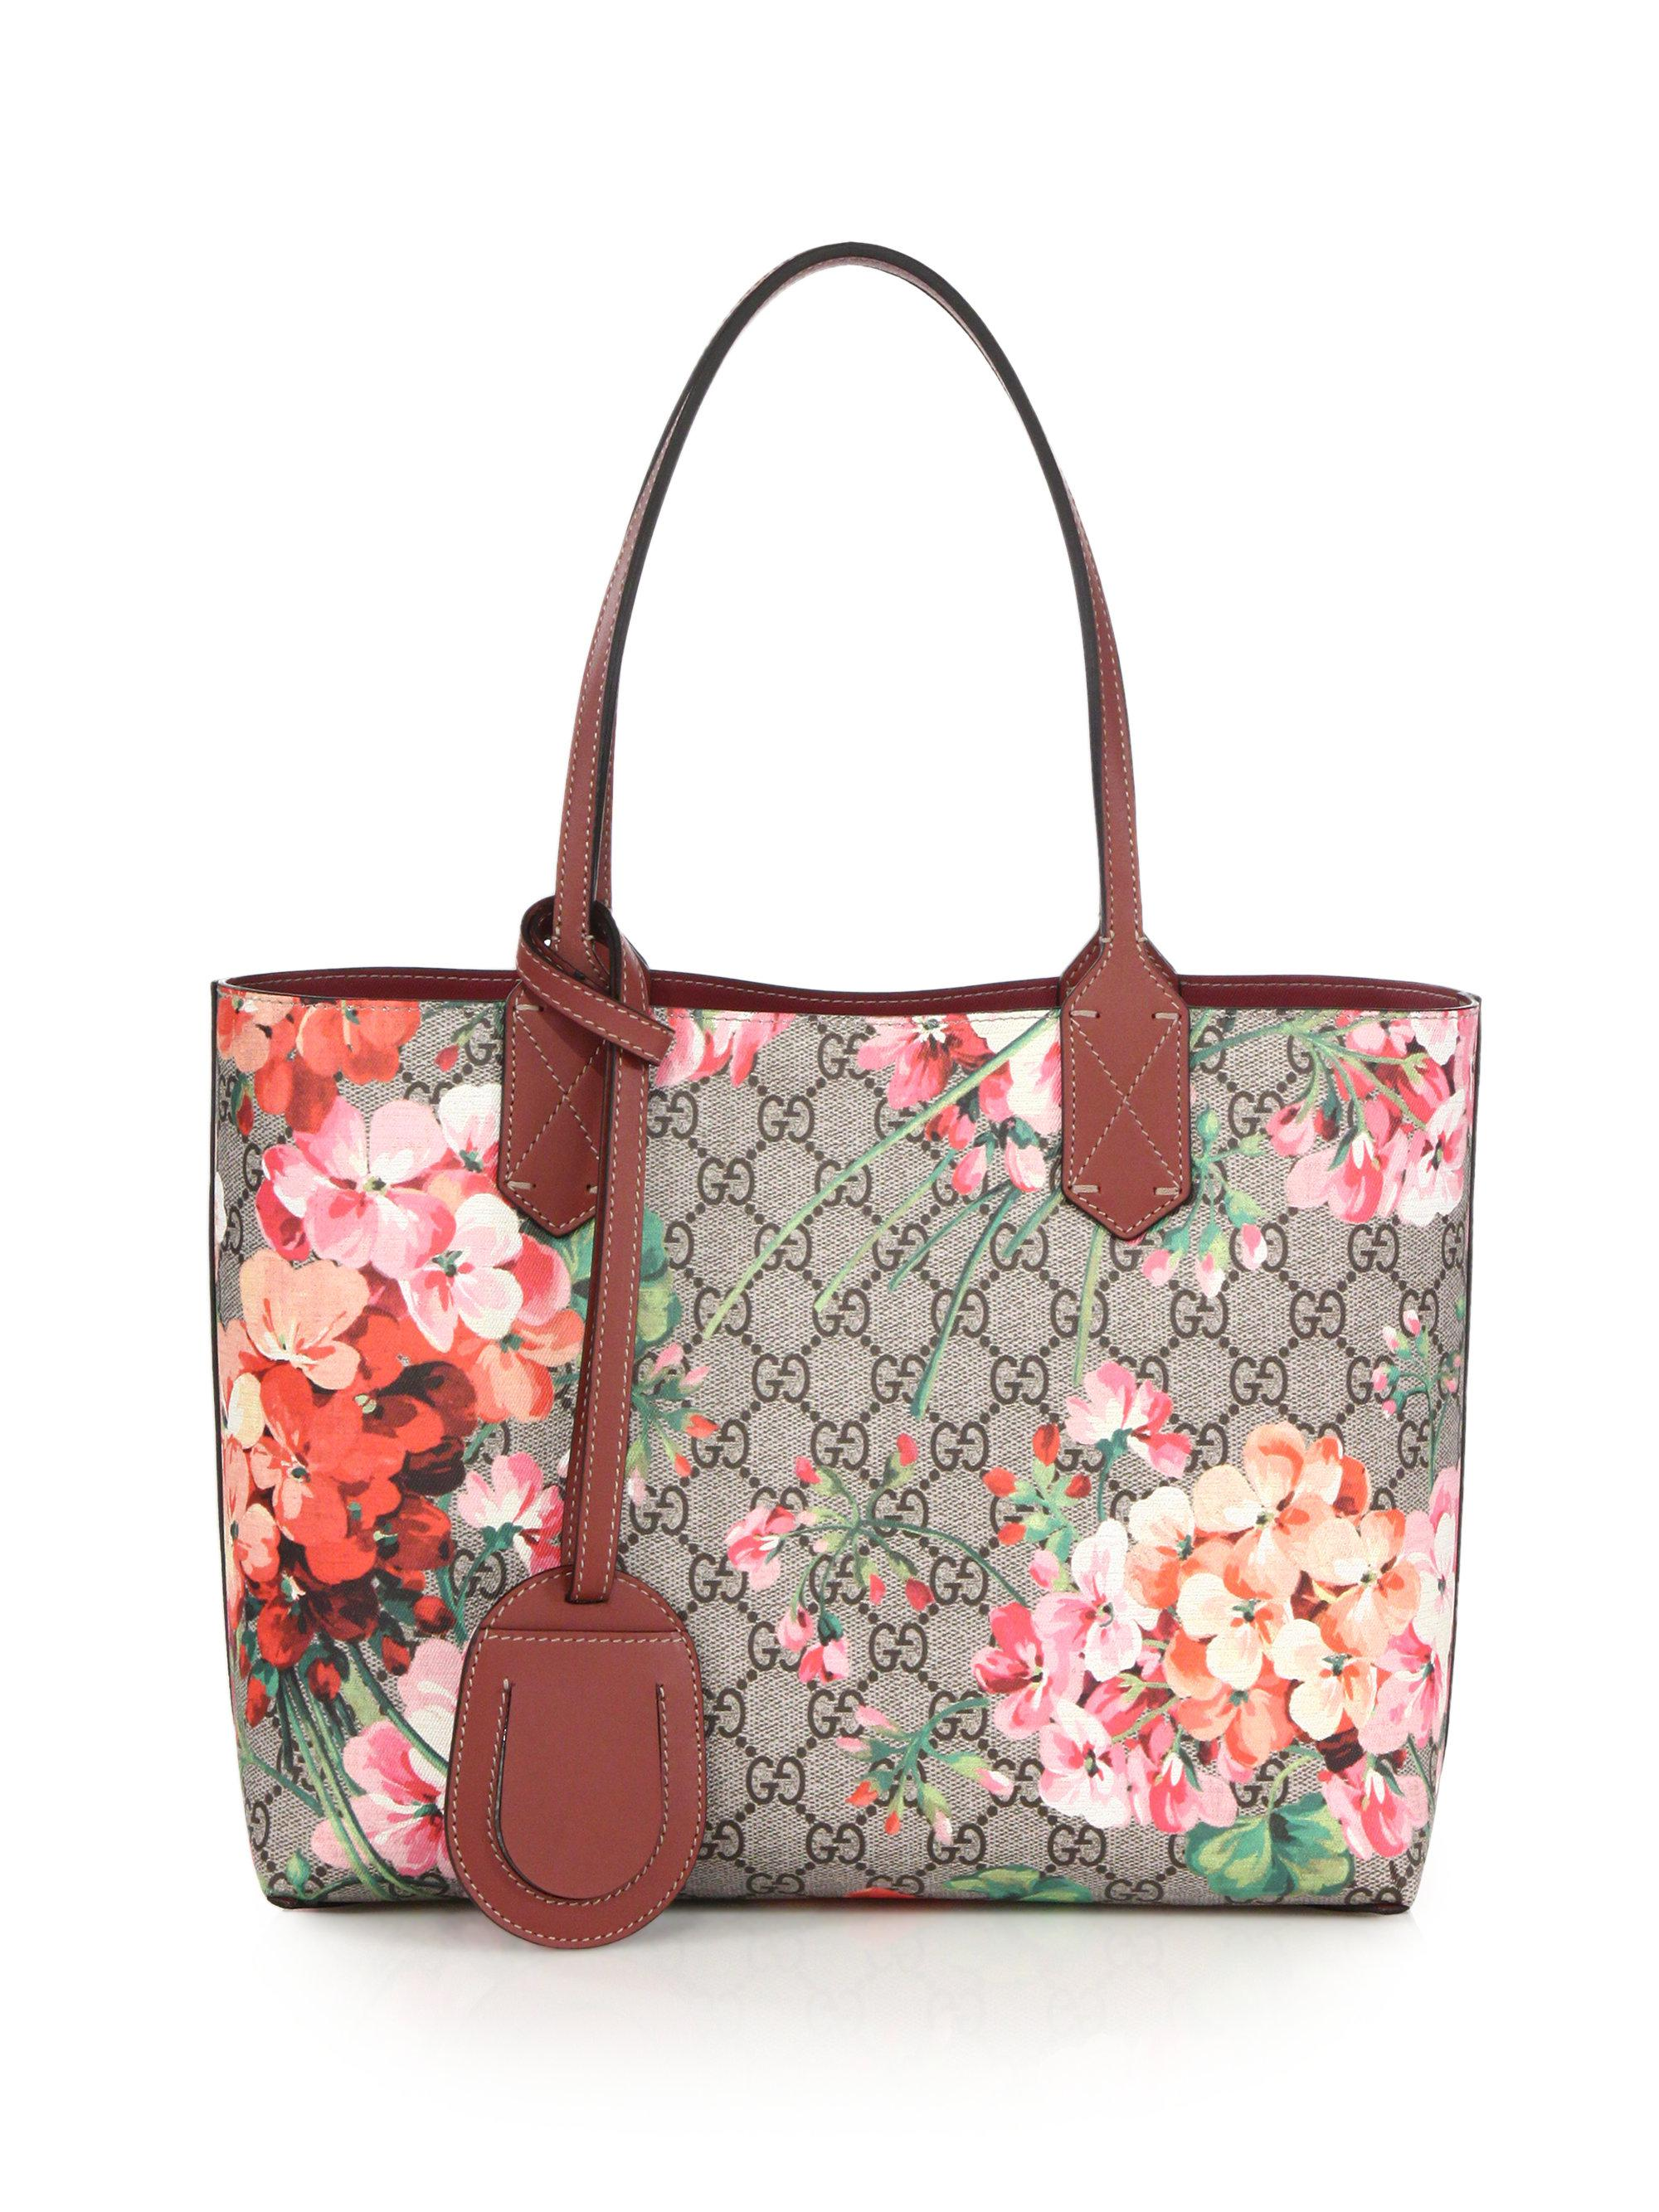 3df8c78cc Gucci Gg Blooms Small Reversible Tote in Pink - Lyst